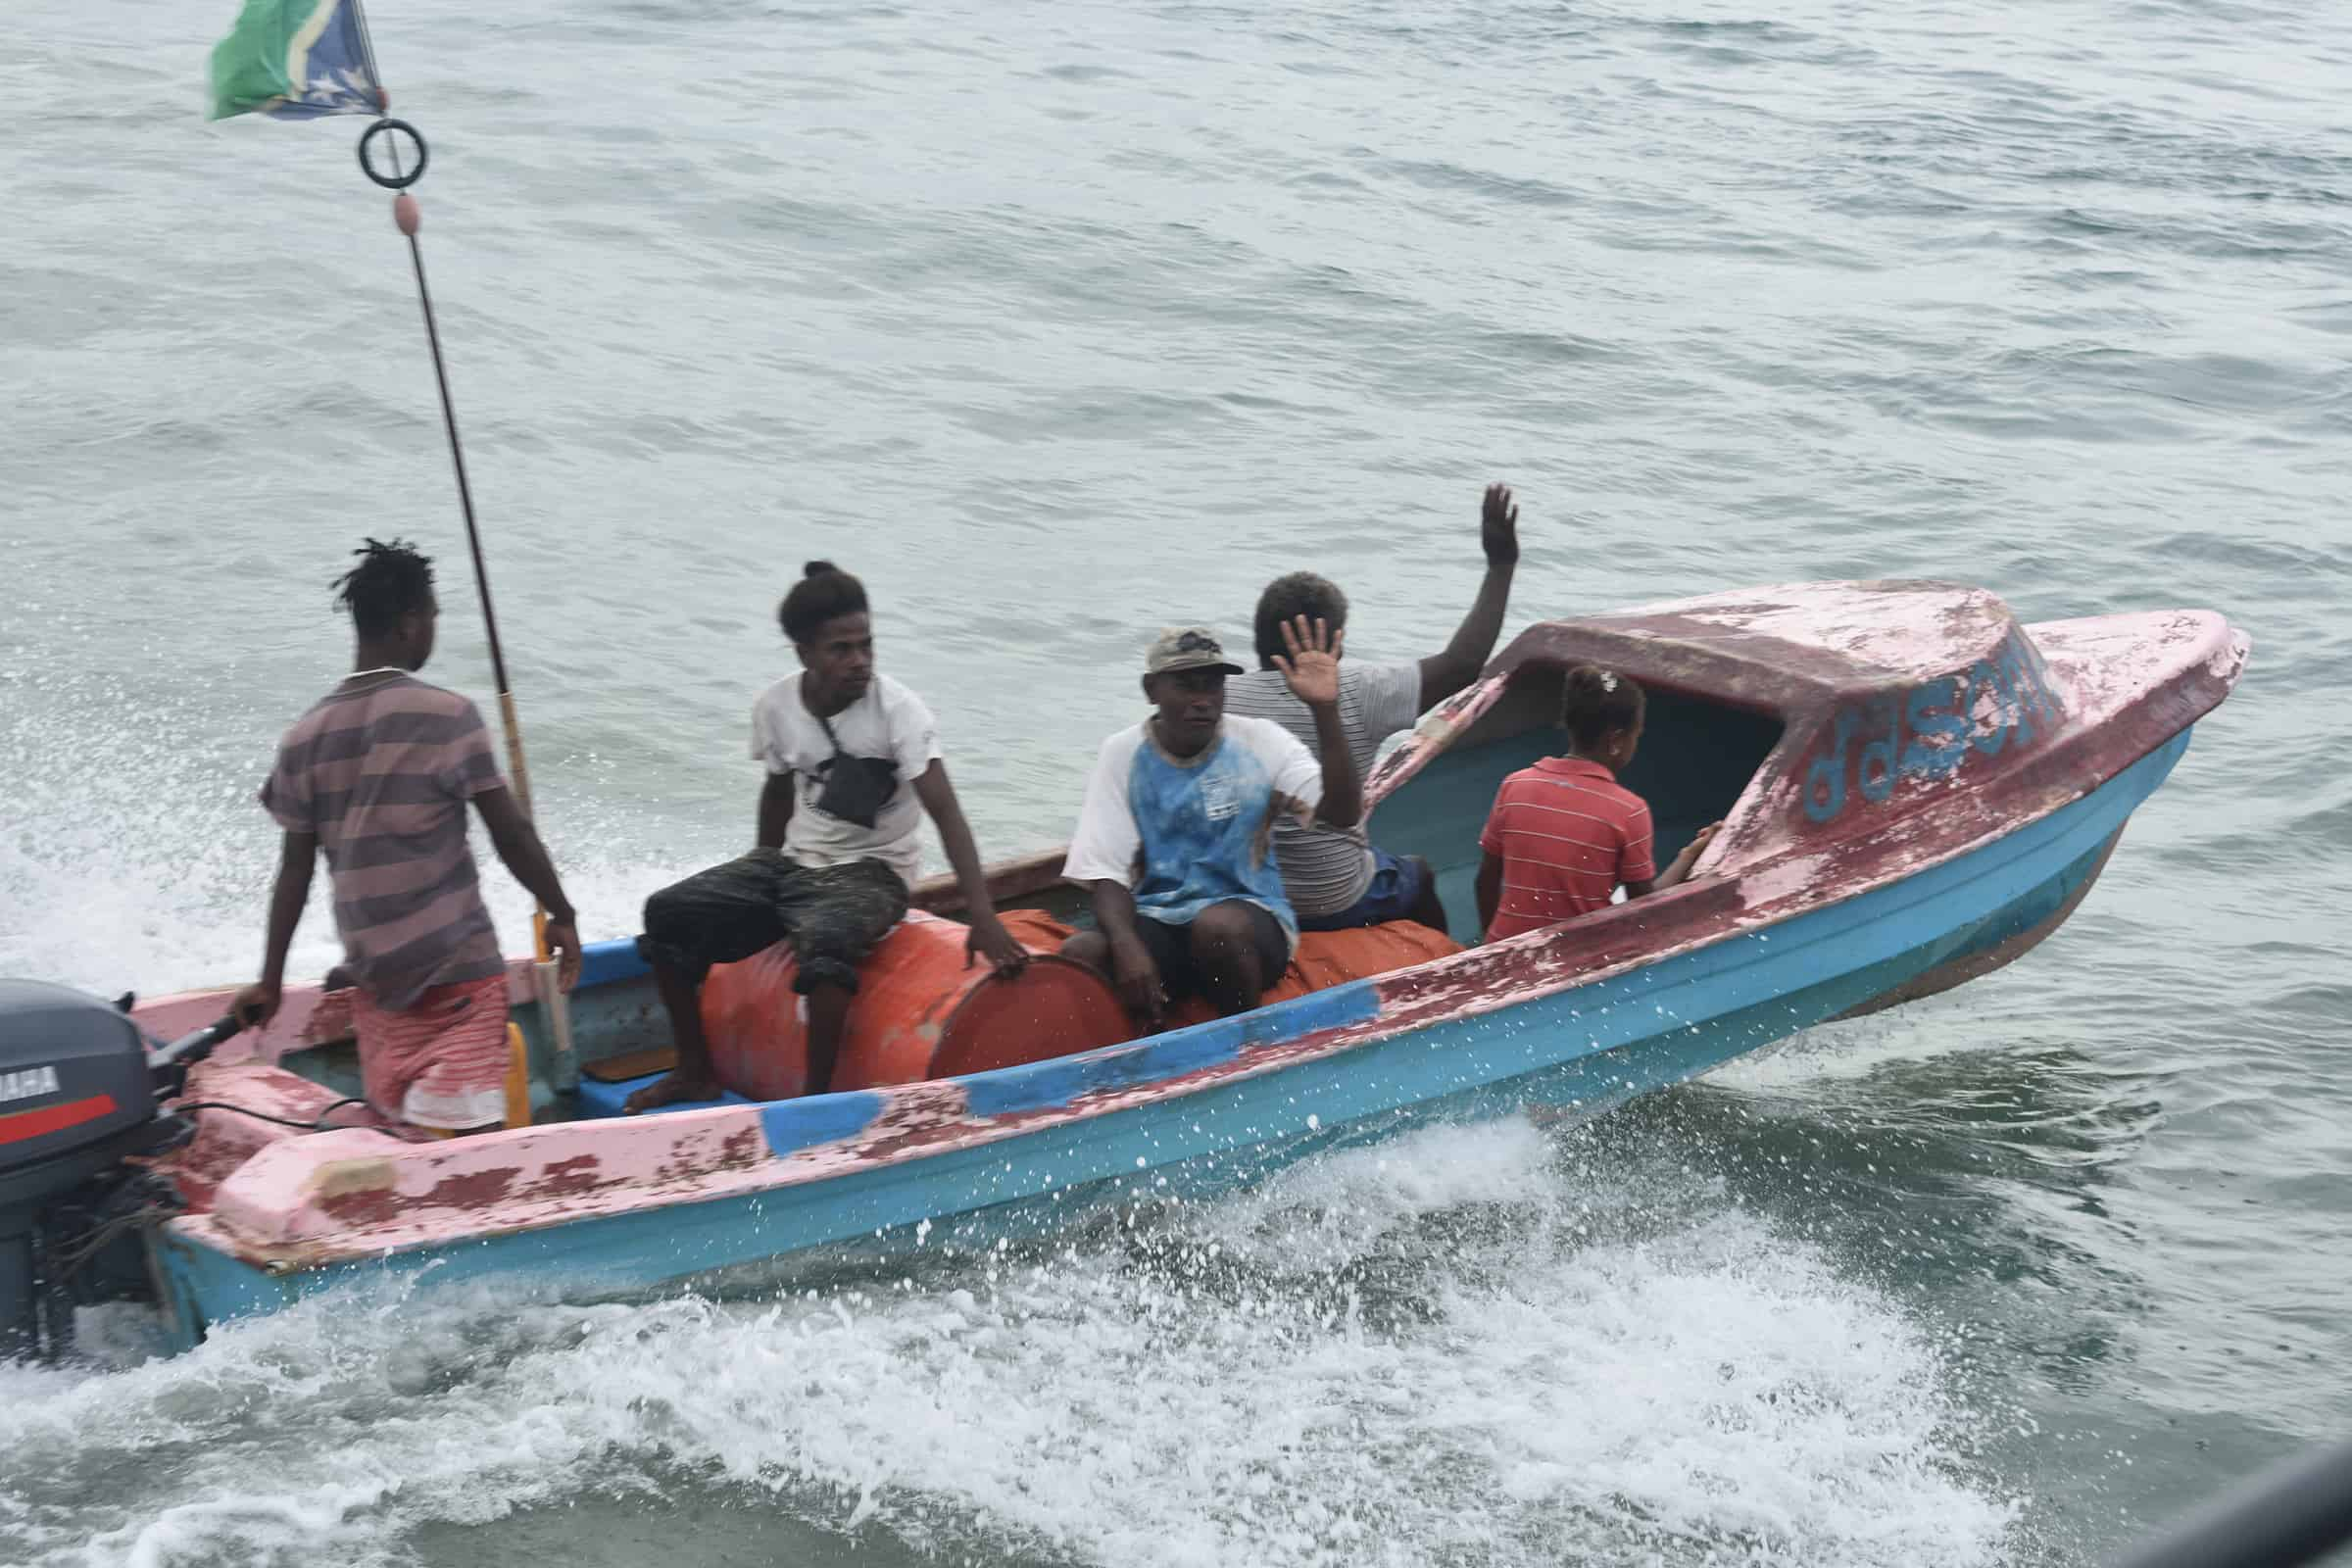 A group of people ride in a boat on a river